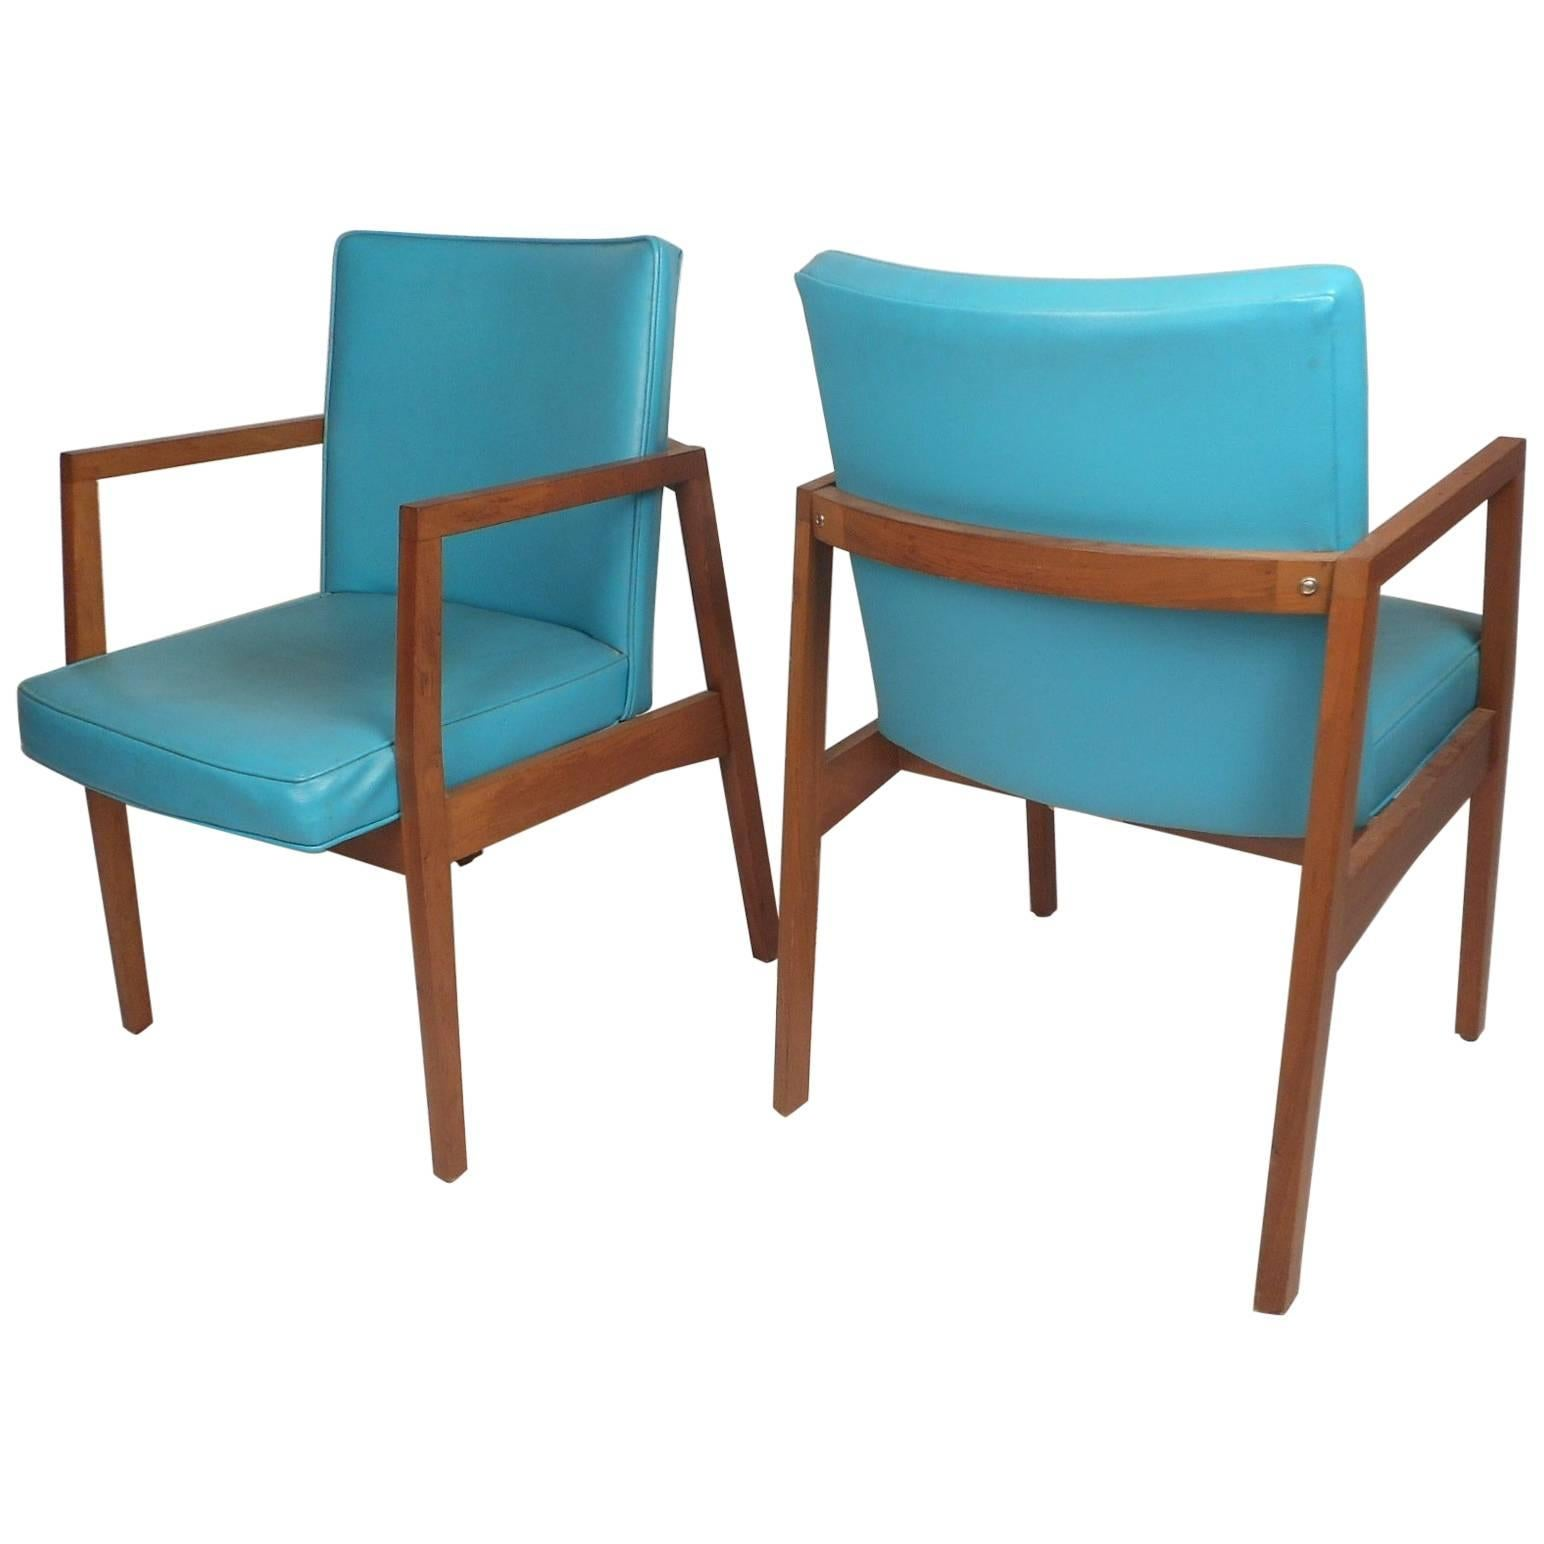 Mid century modern lounge chairs by j b van sciver co for sale at 1stdibs